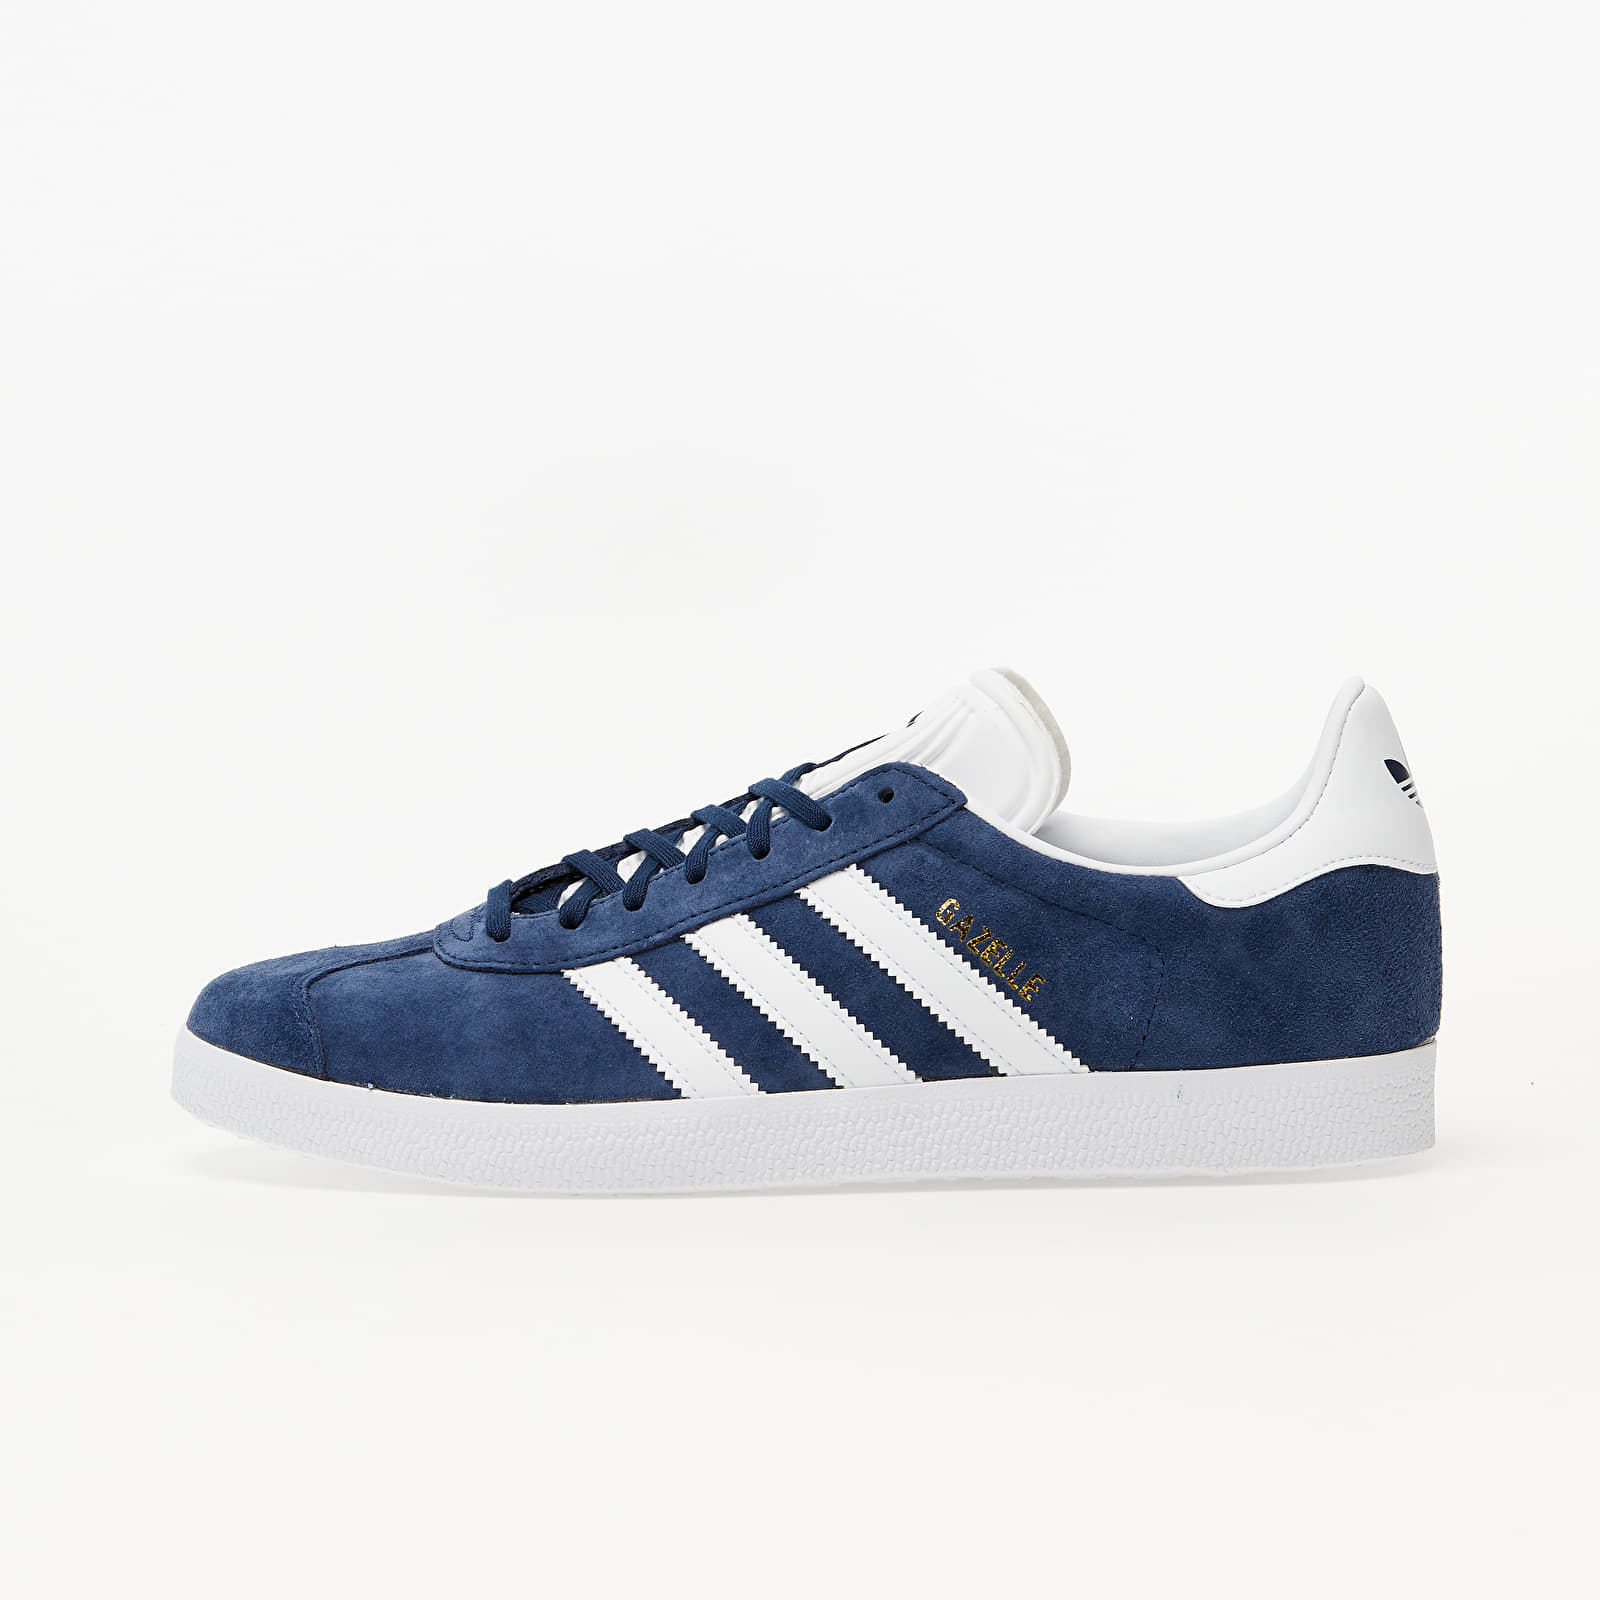 Men's shoes adidas Gazelle Core Navy/ White/ Gold Metalic